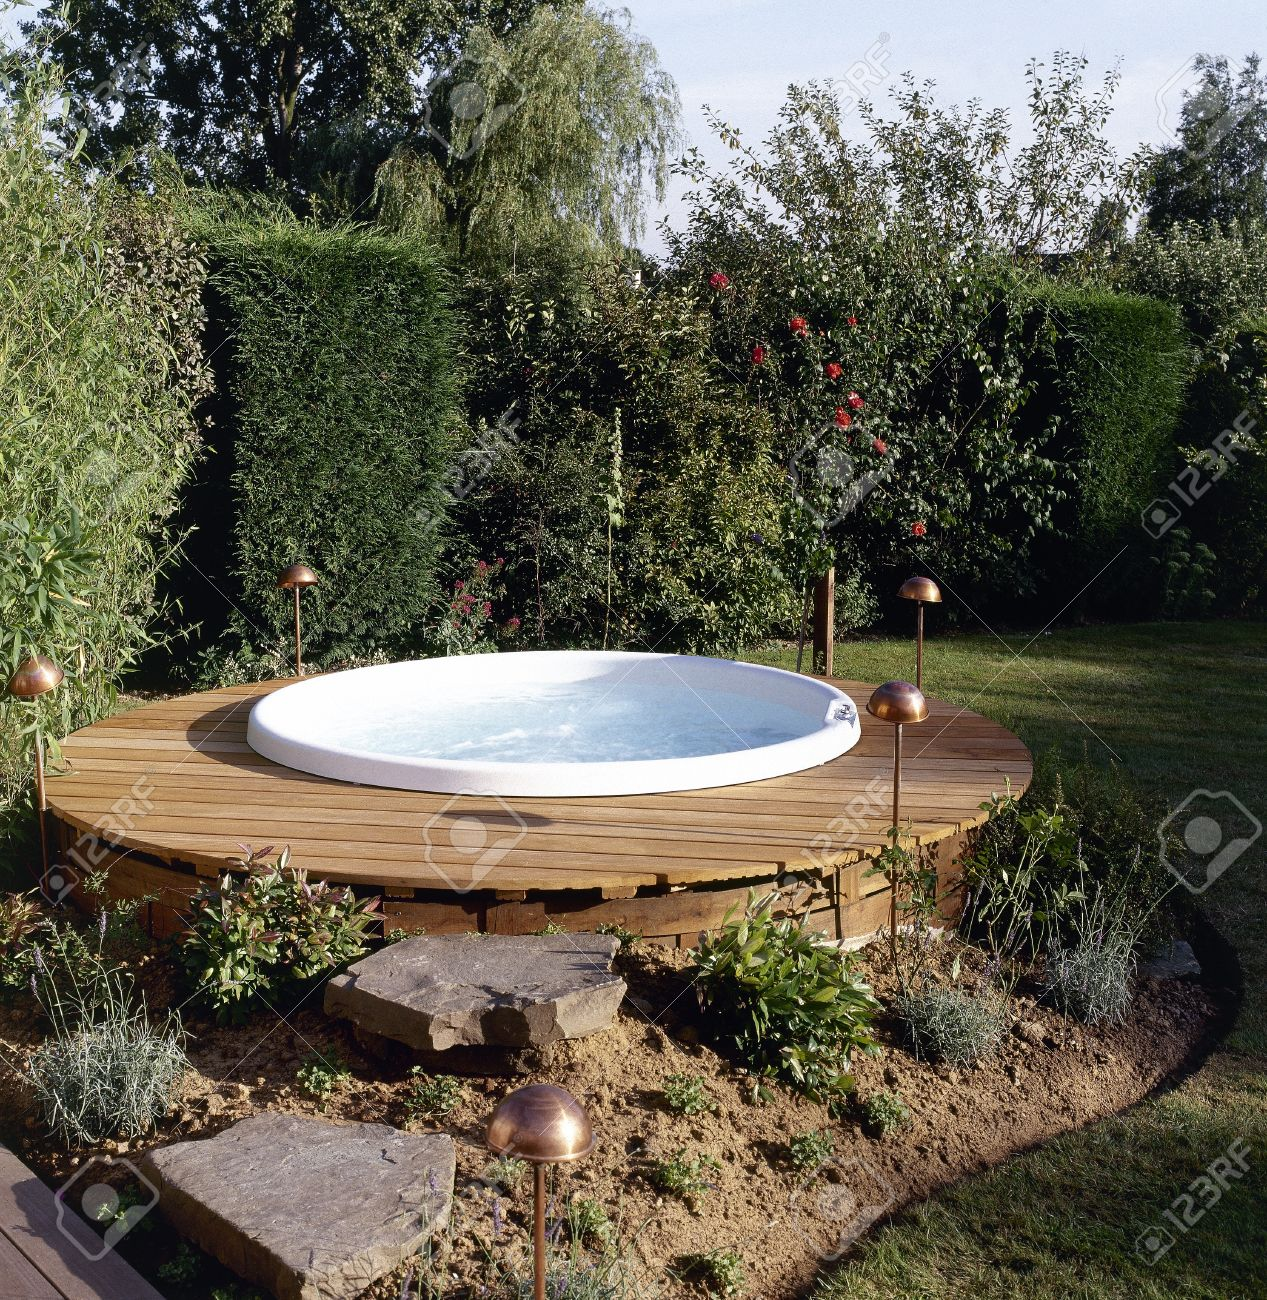 Beautiful outdoor jacuzzi in the backyard garden provides restful relaxation and solitude Standard-Bild - 19502780